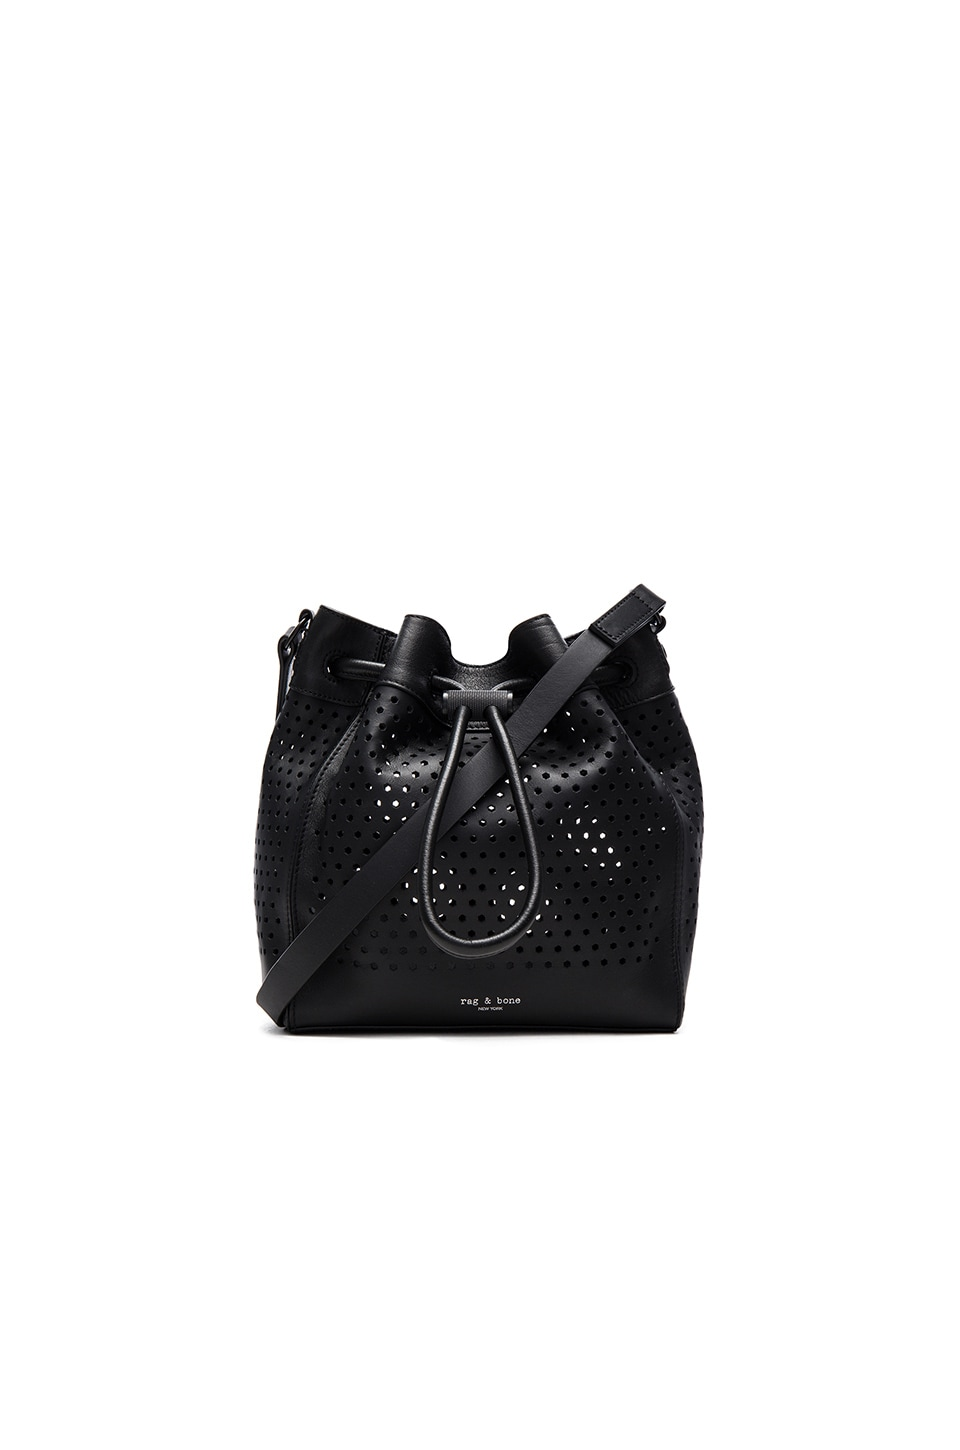 Rag & Bone Aston Mini Bucket Bag in Black Perforated